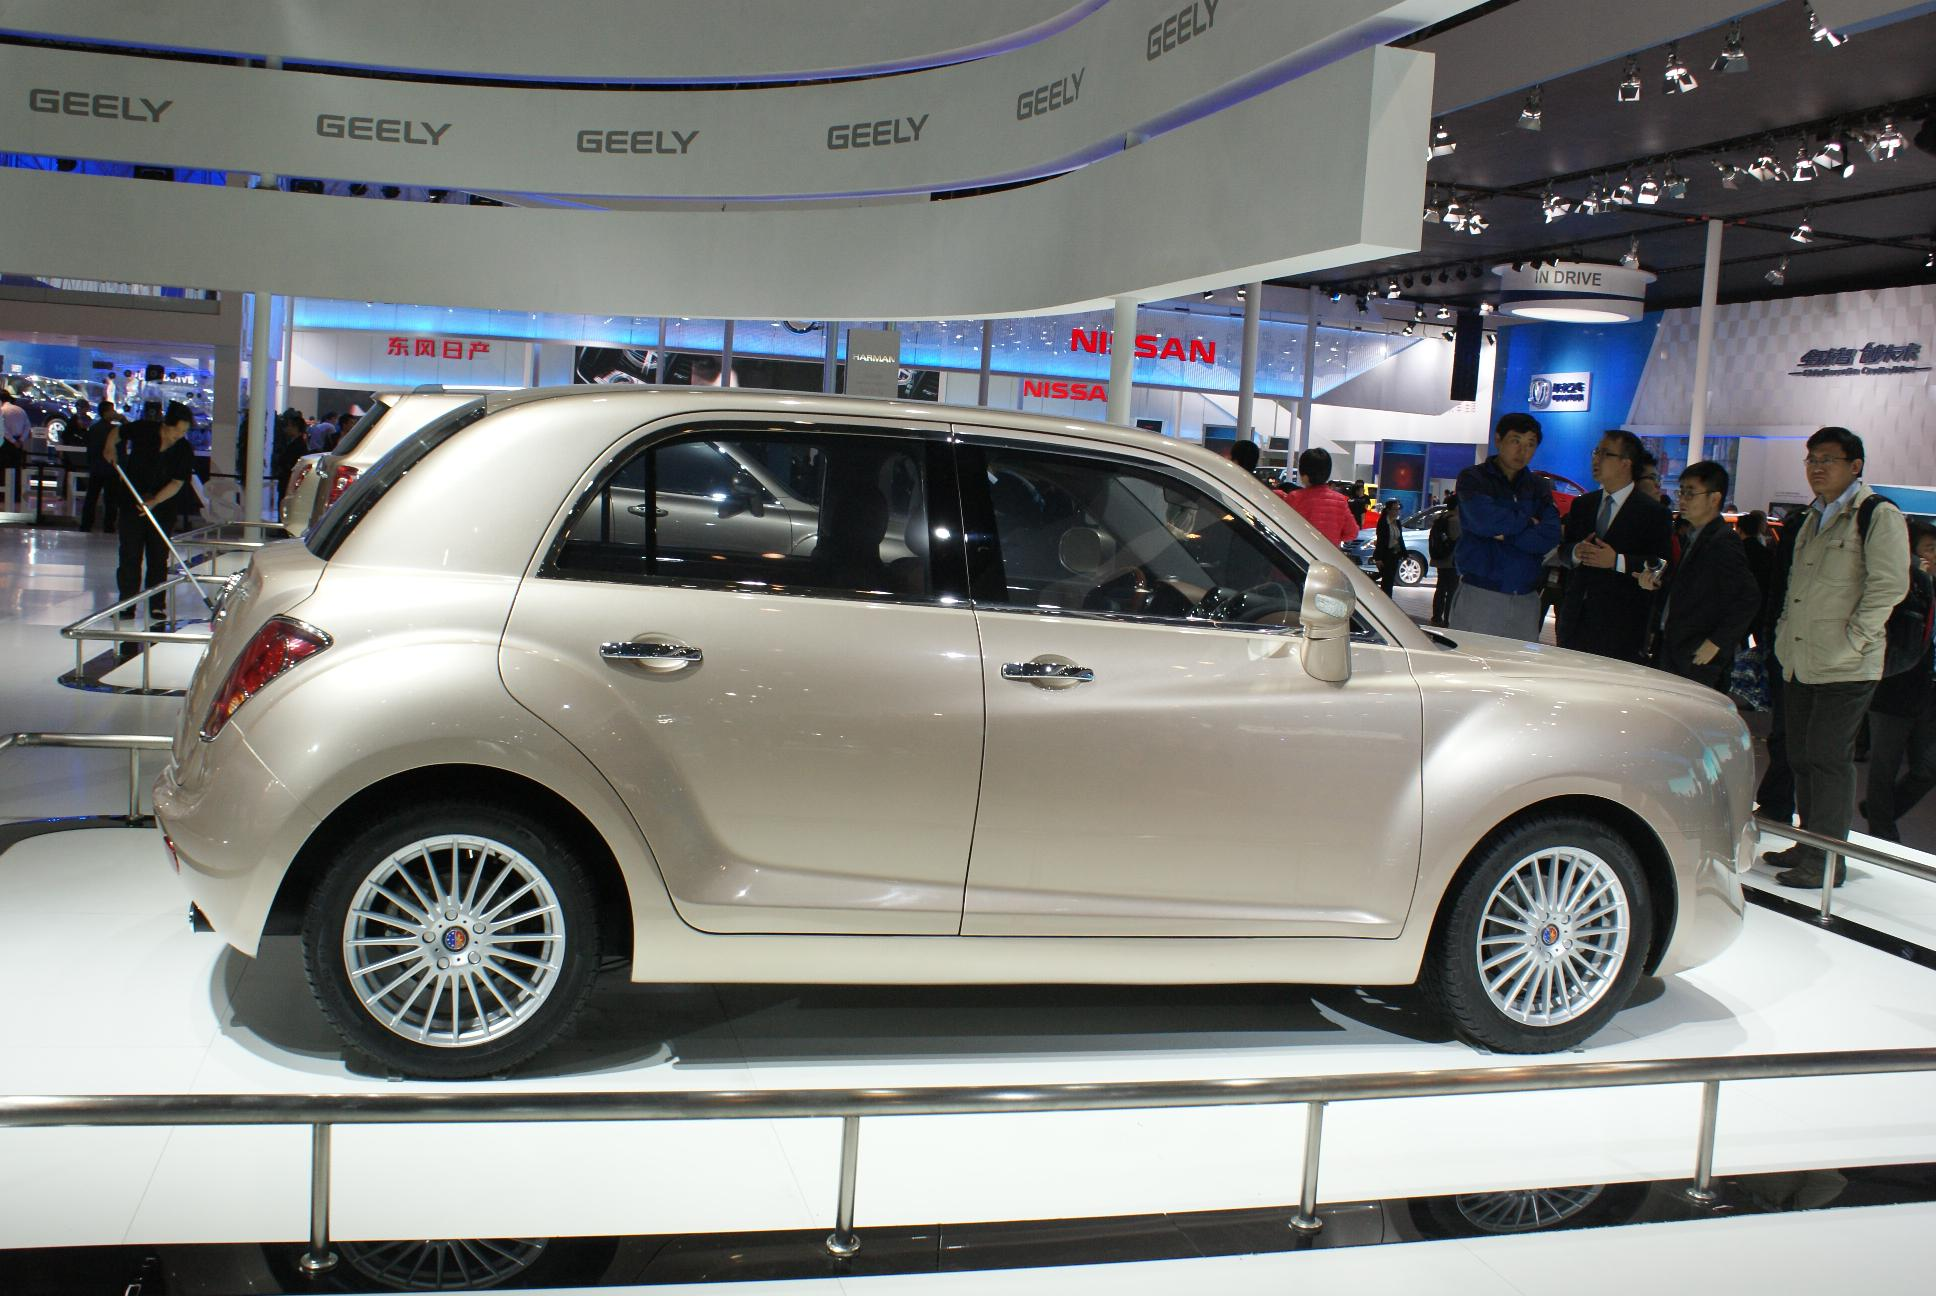 Geely Englon Sc7 And Sx6 Bentley Suv Cloned Autoevolution